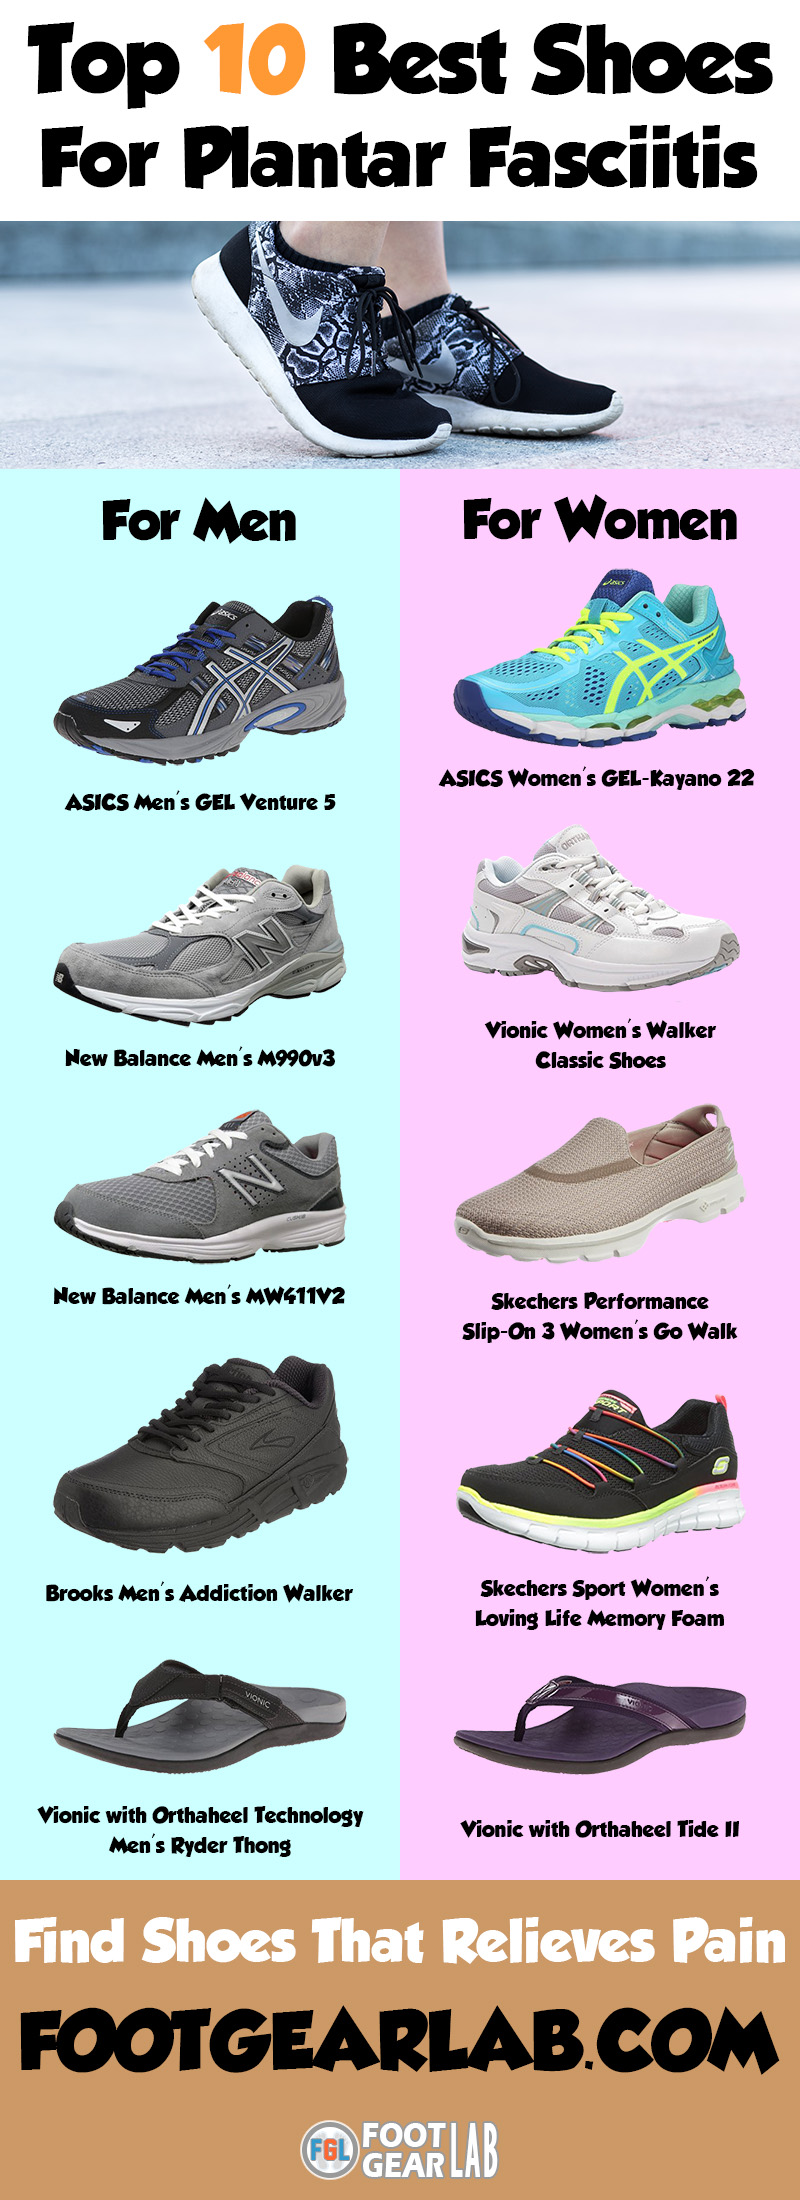 Top 10 Best Shoes For Plantar Fasciitis For Men And Women